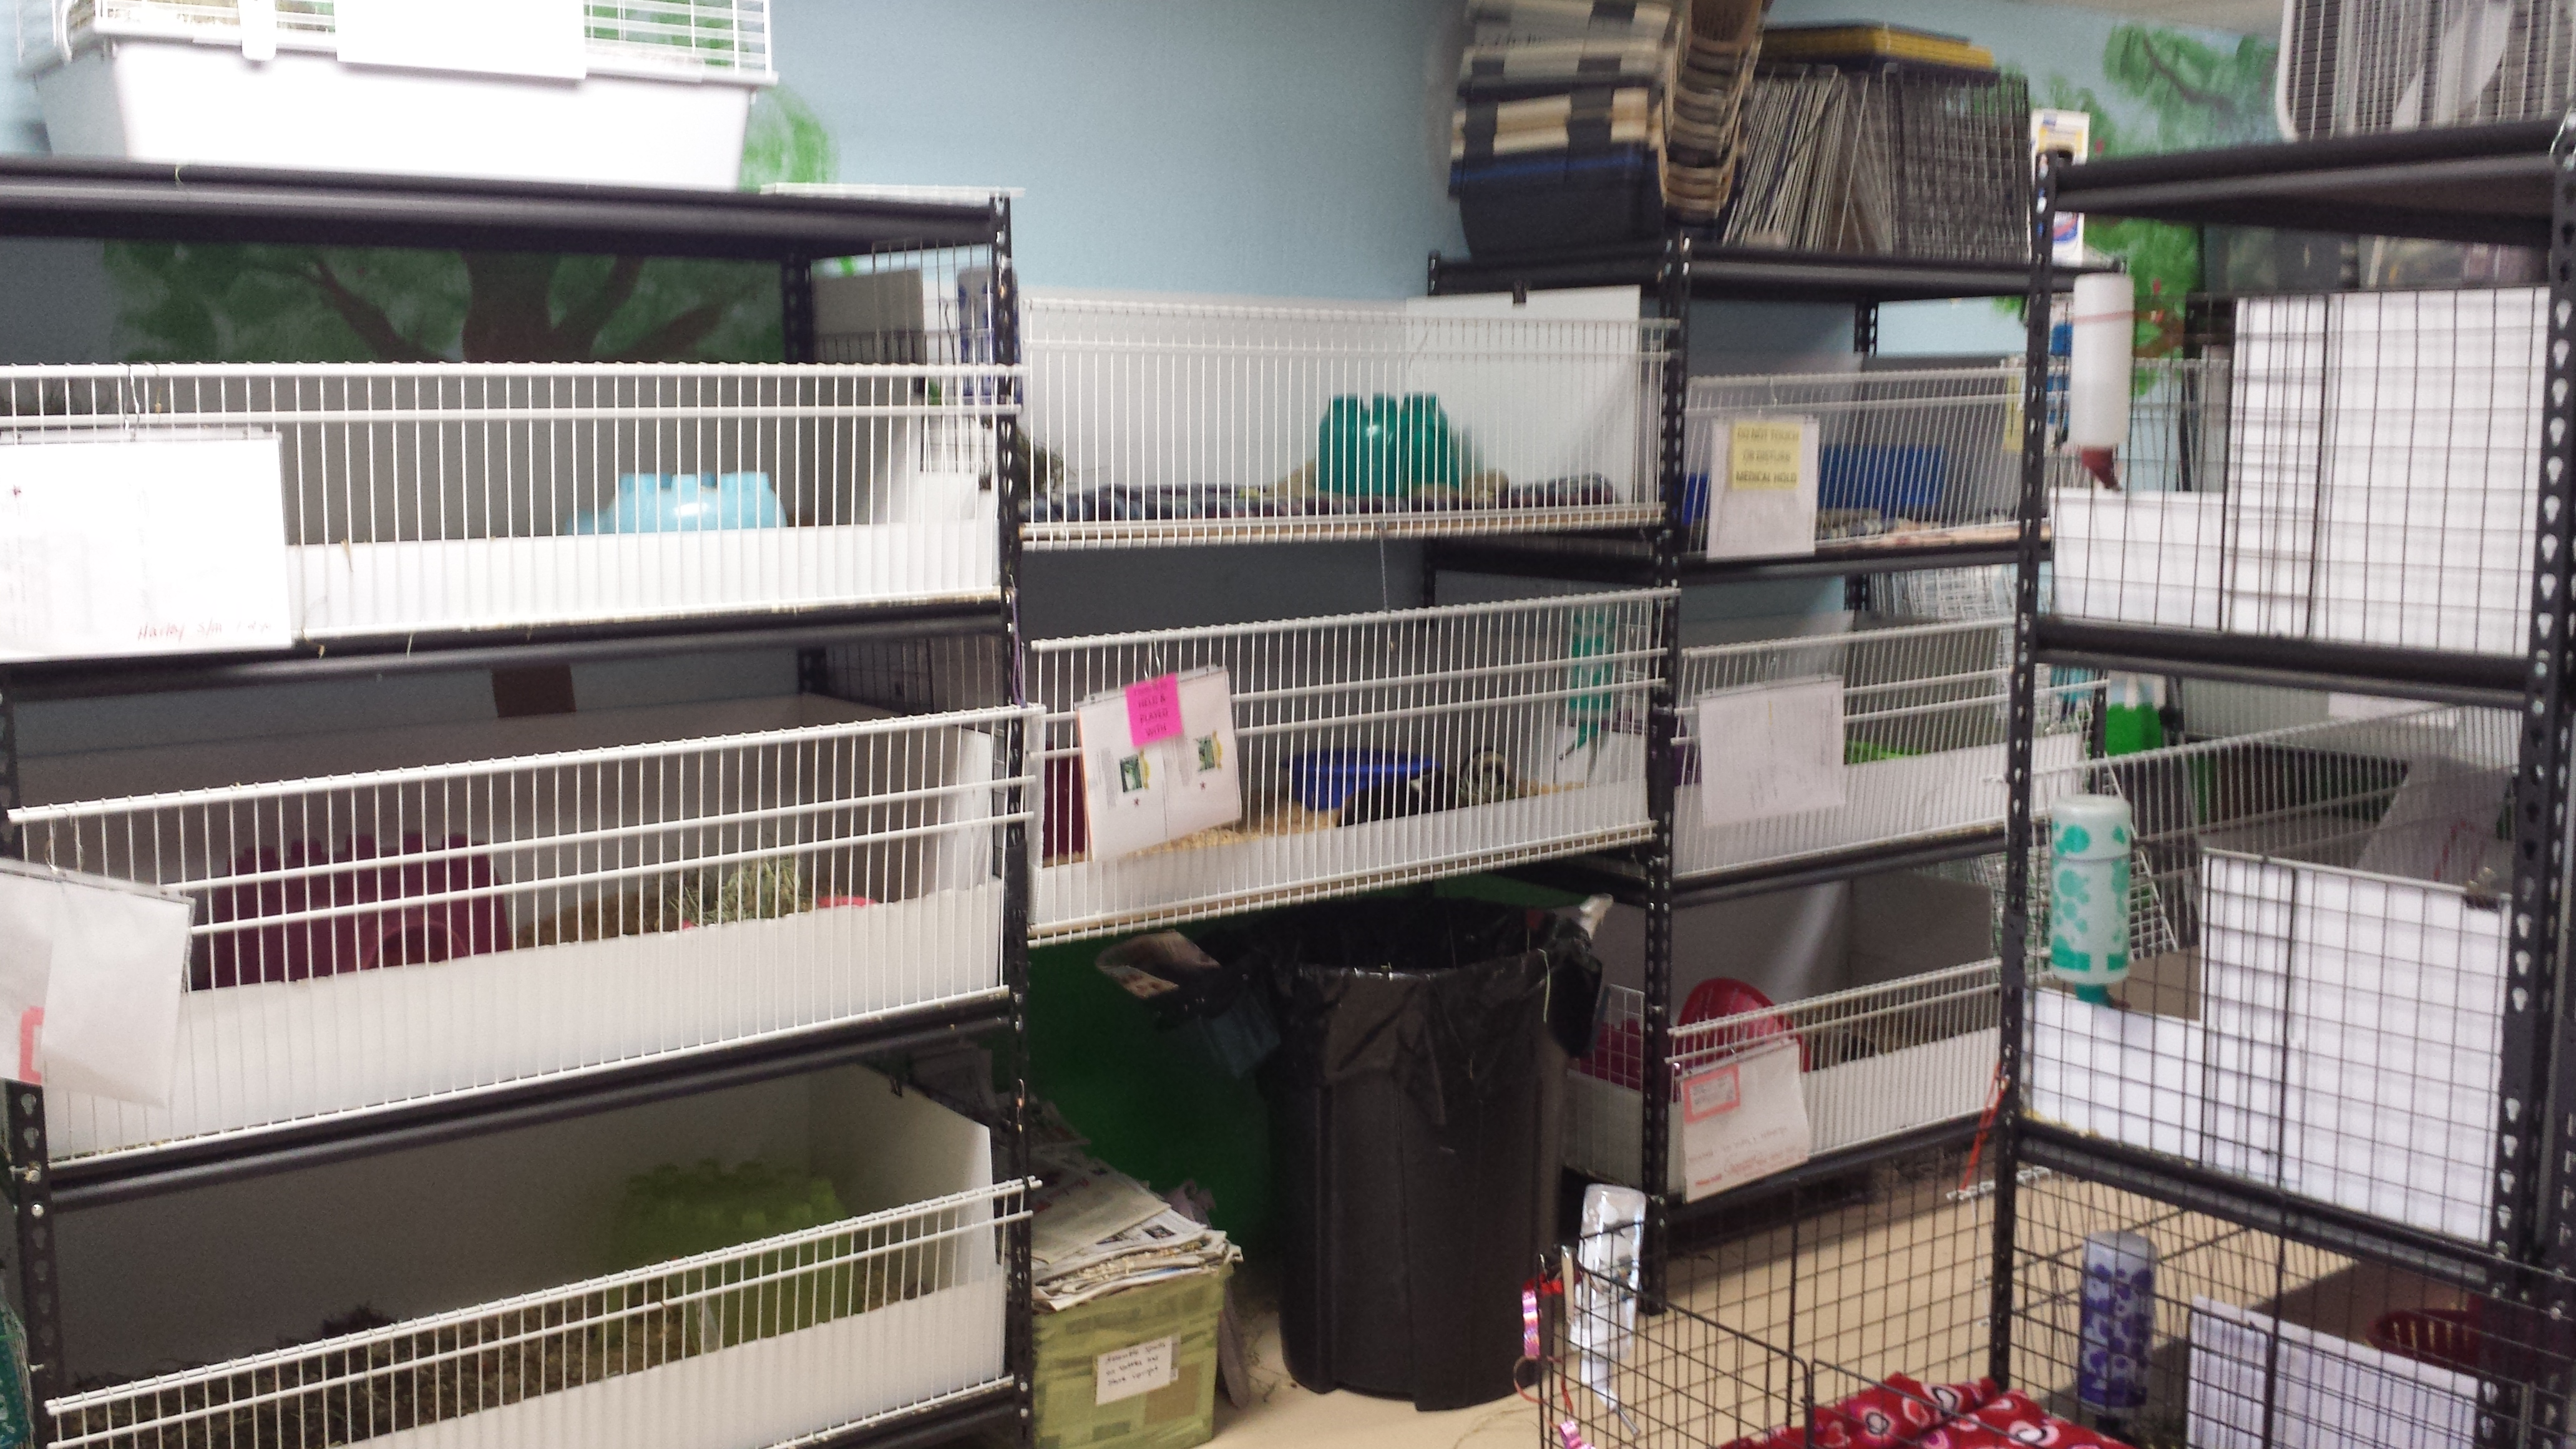 The home to about 40 guinea pigs waiting for their forever families!